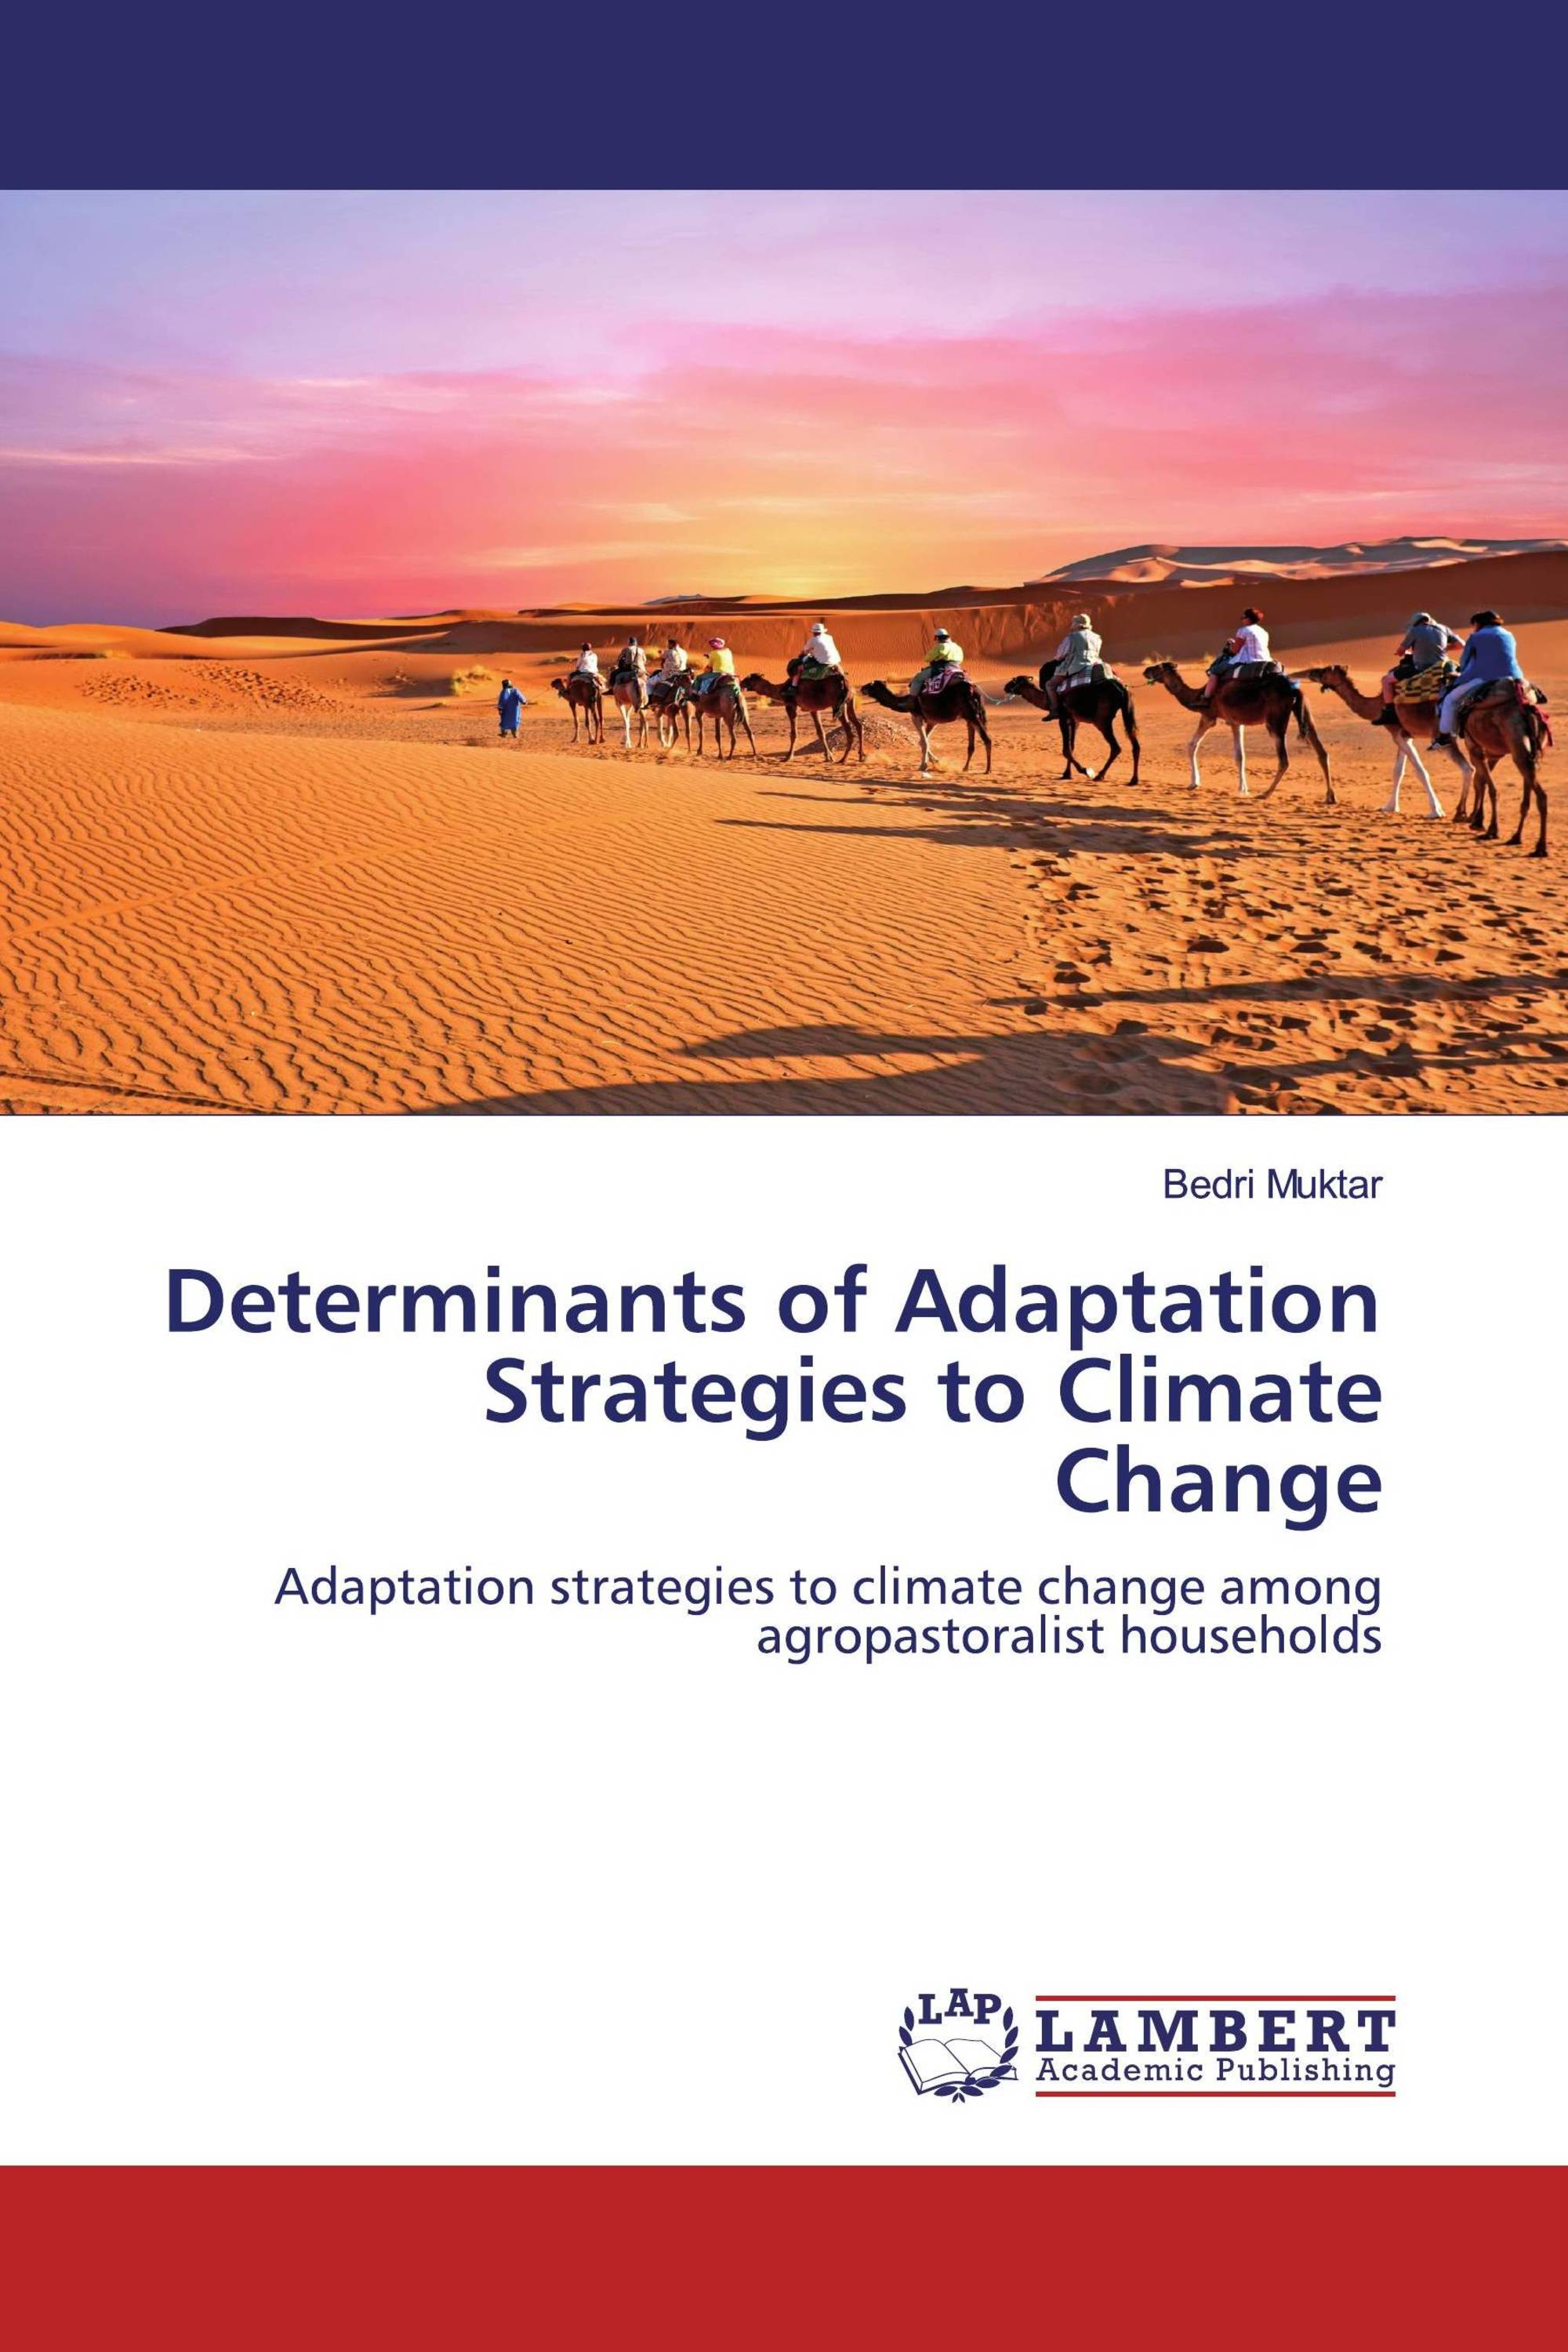 Determinants of Adaptation Strategies to Climate Change